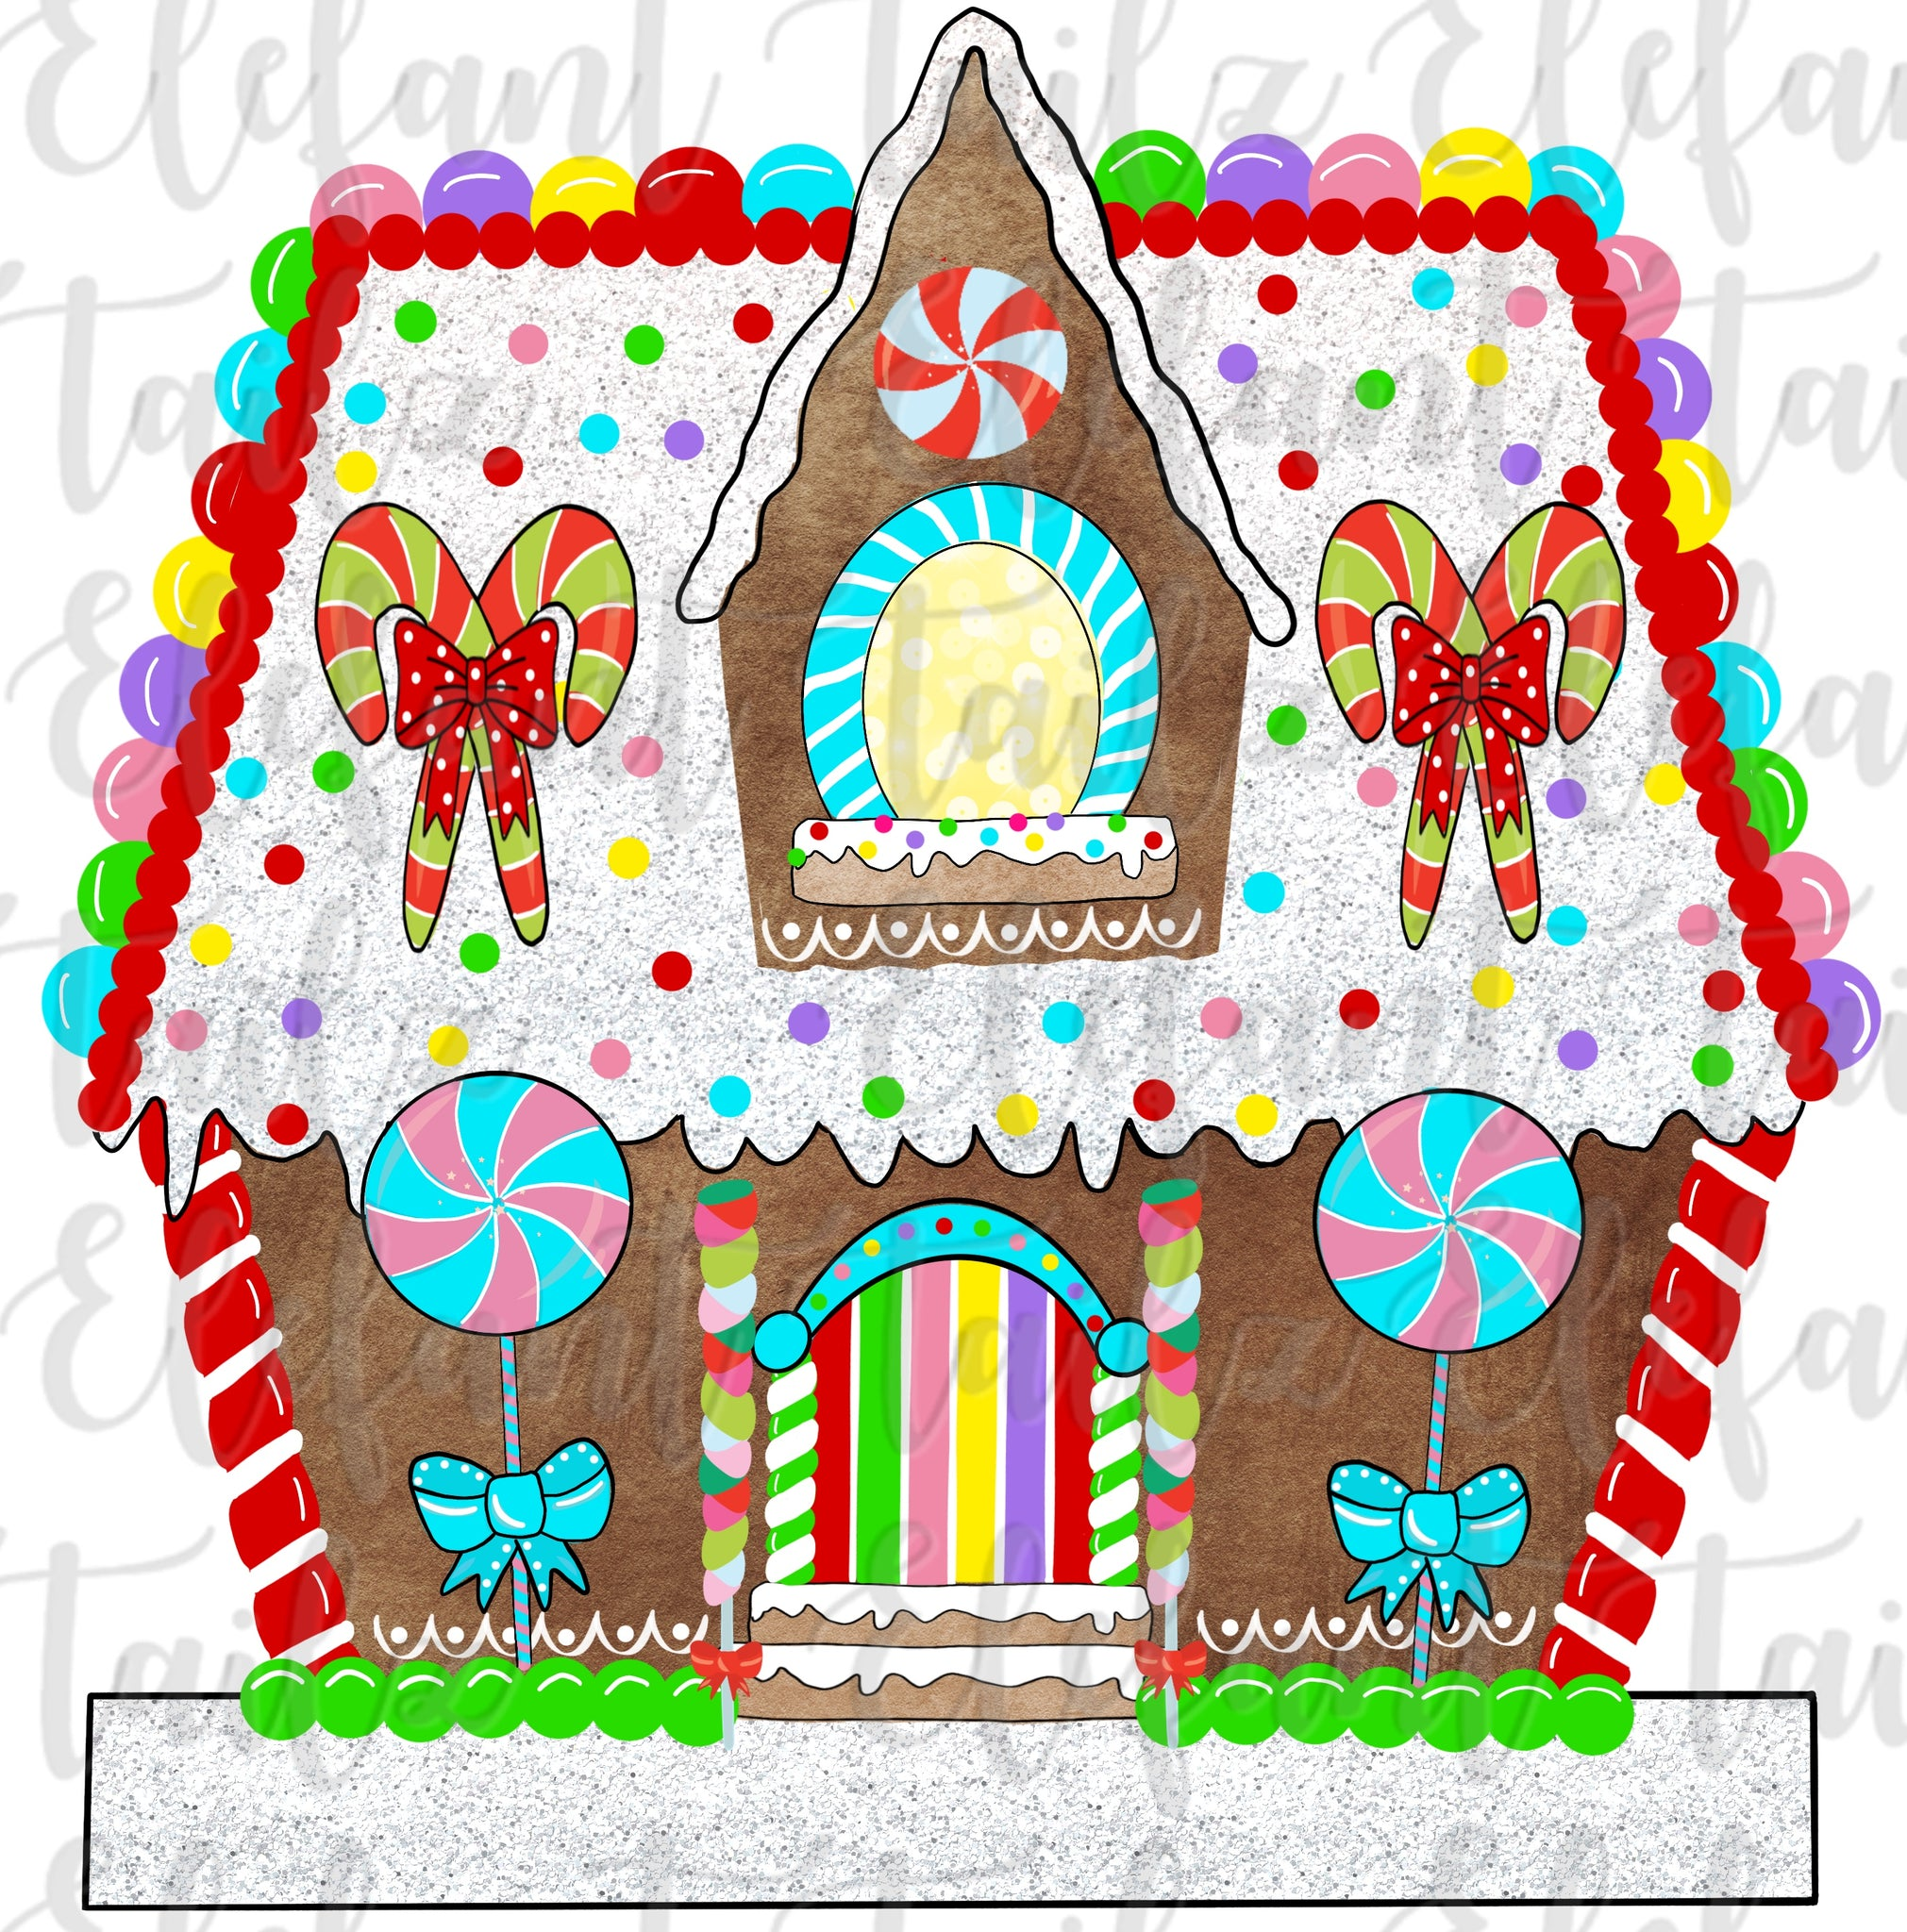 Gingerbread House 1 Window - Blank